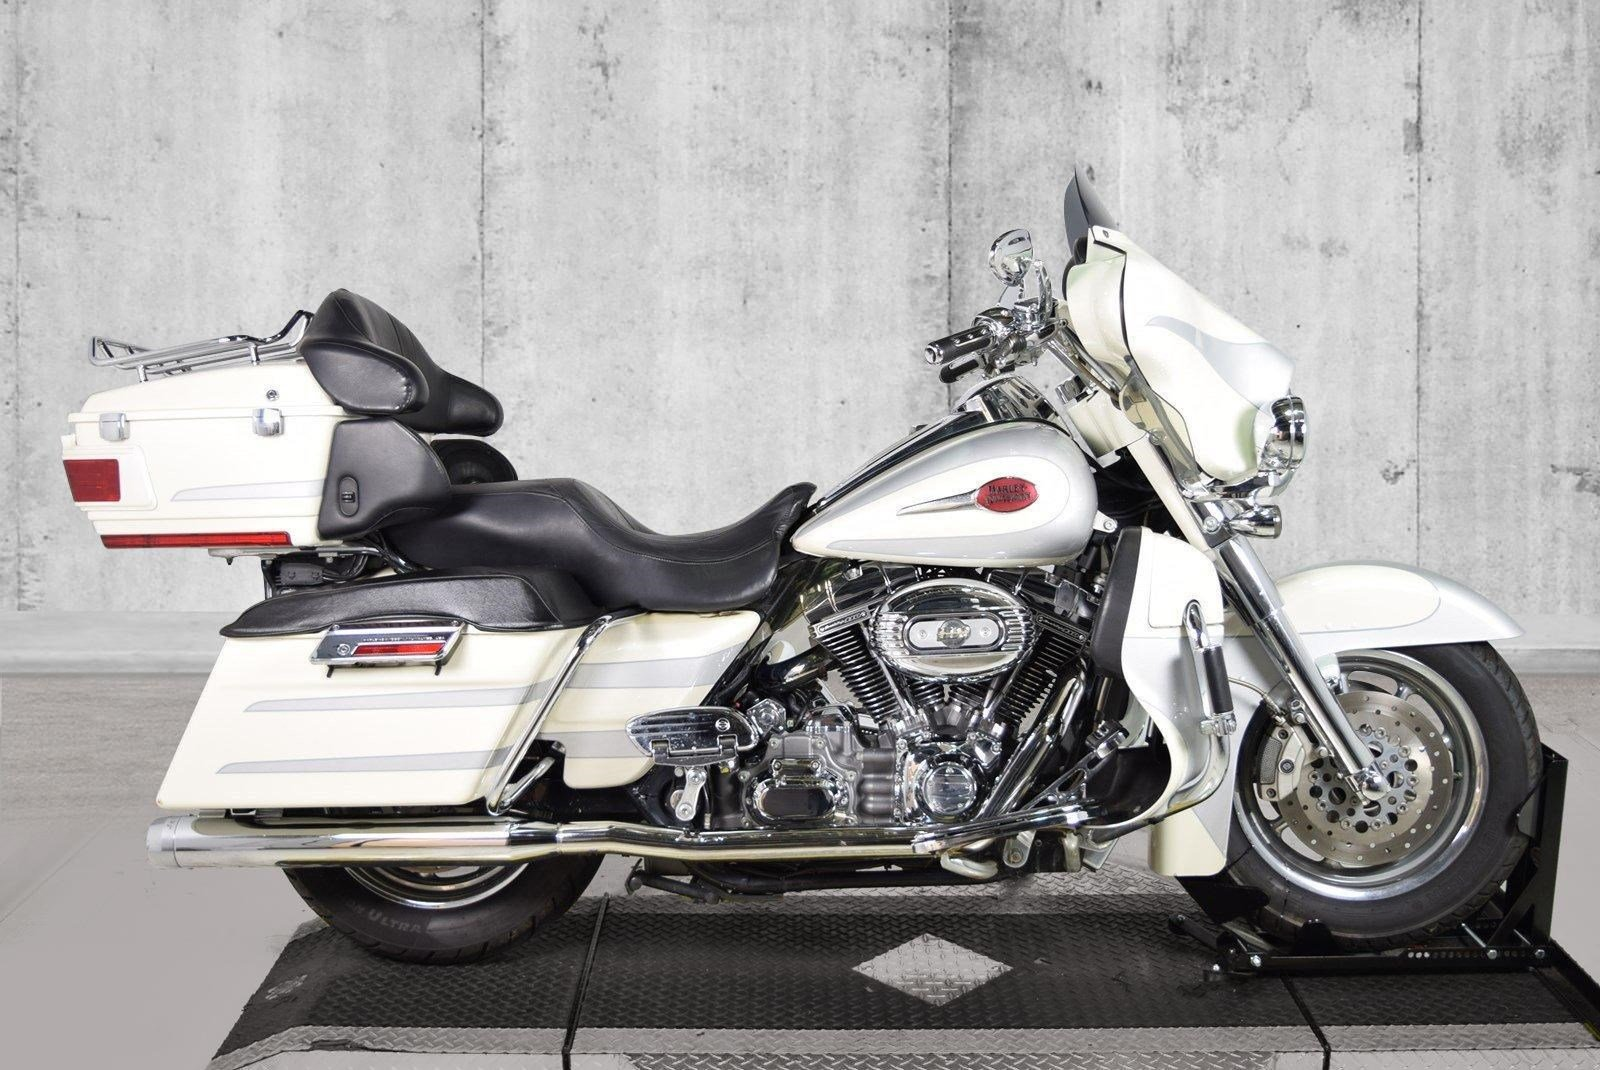 Pre-Owned 2008 Harley-Davidson Electra Glide Ultra Classic CVO FLHTCUSE